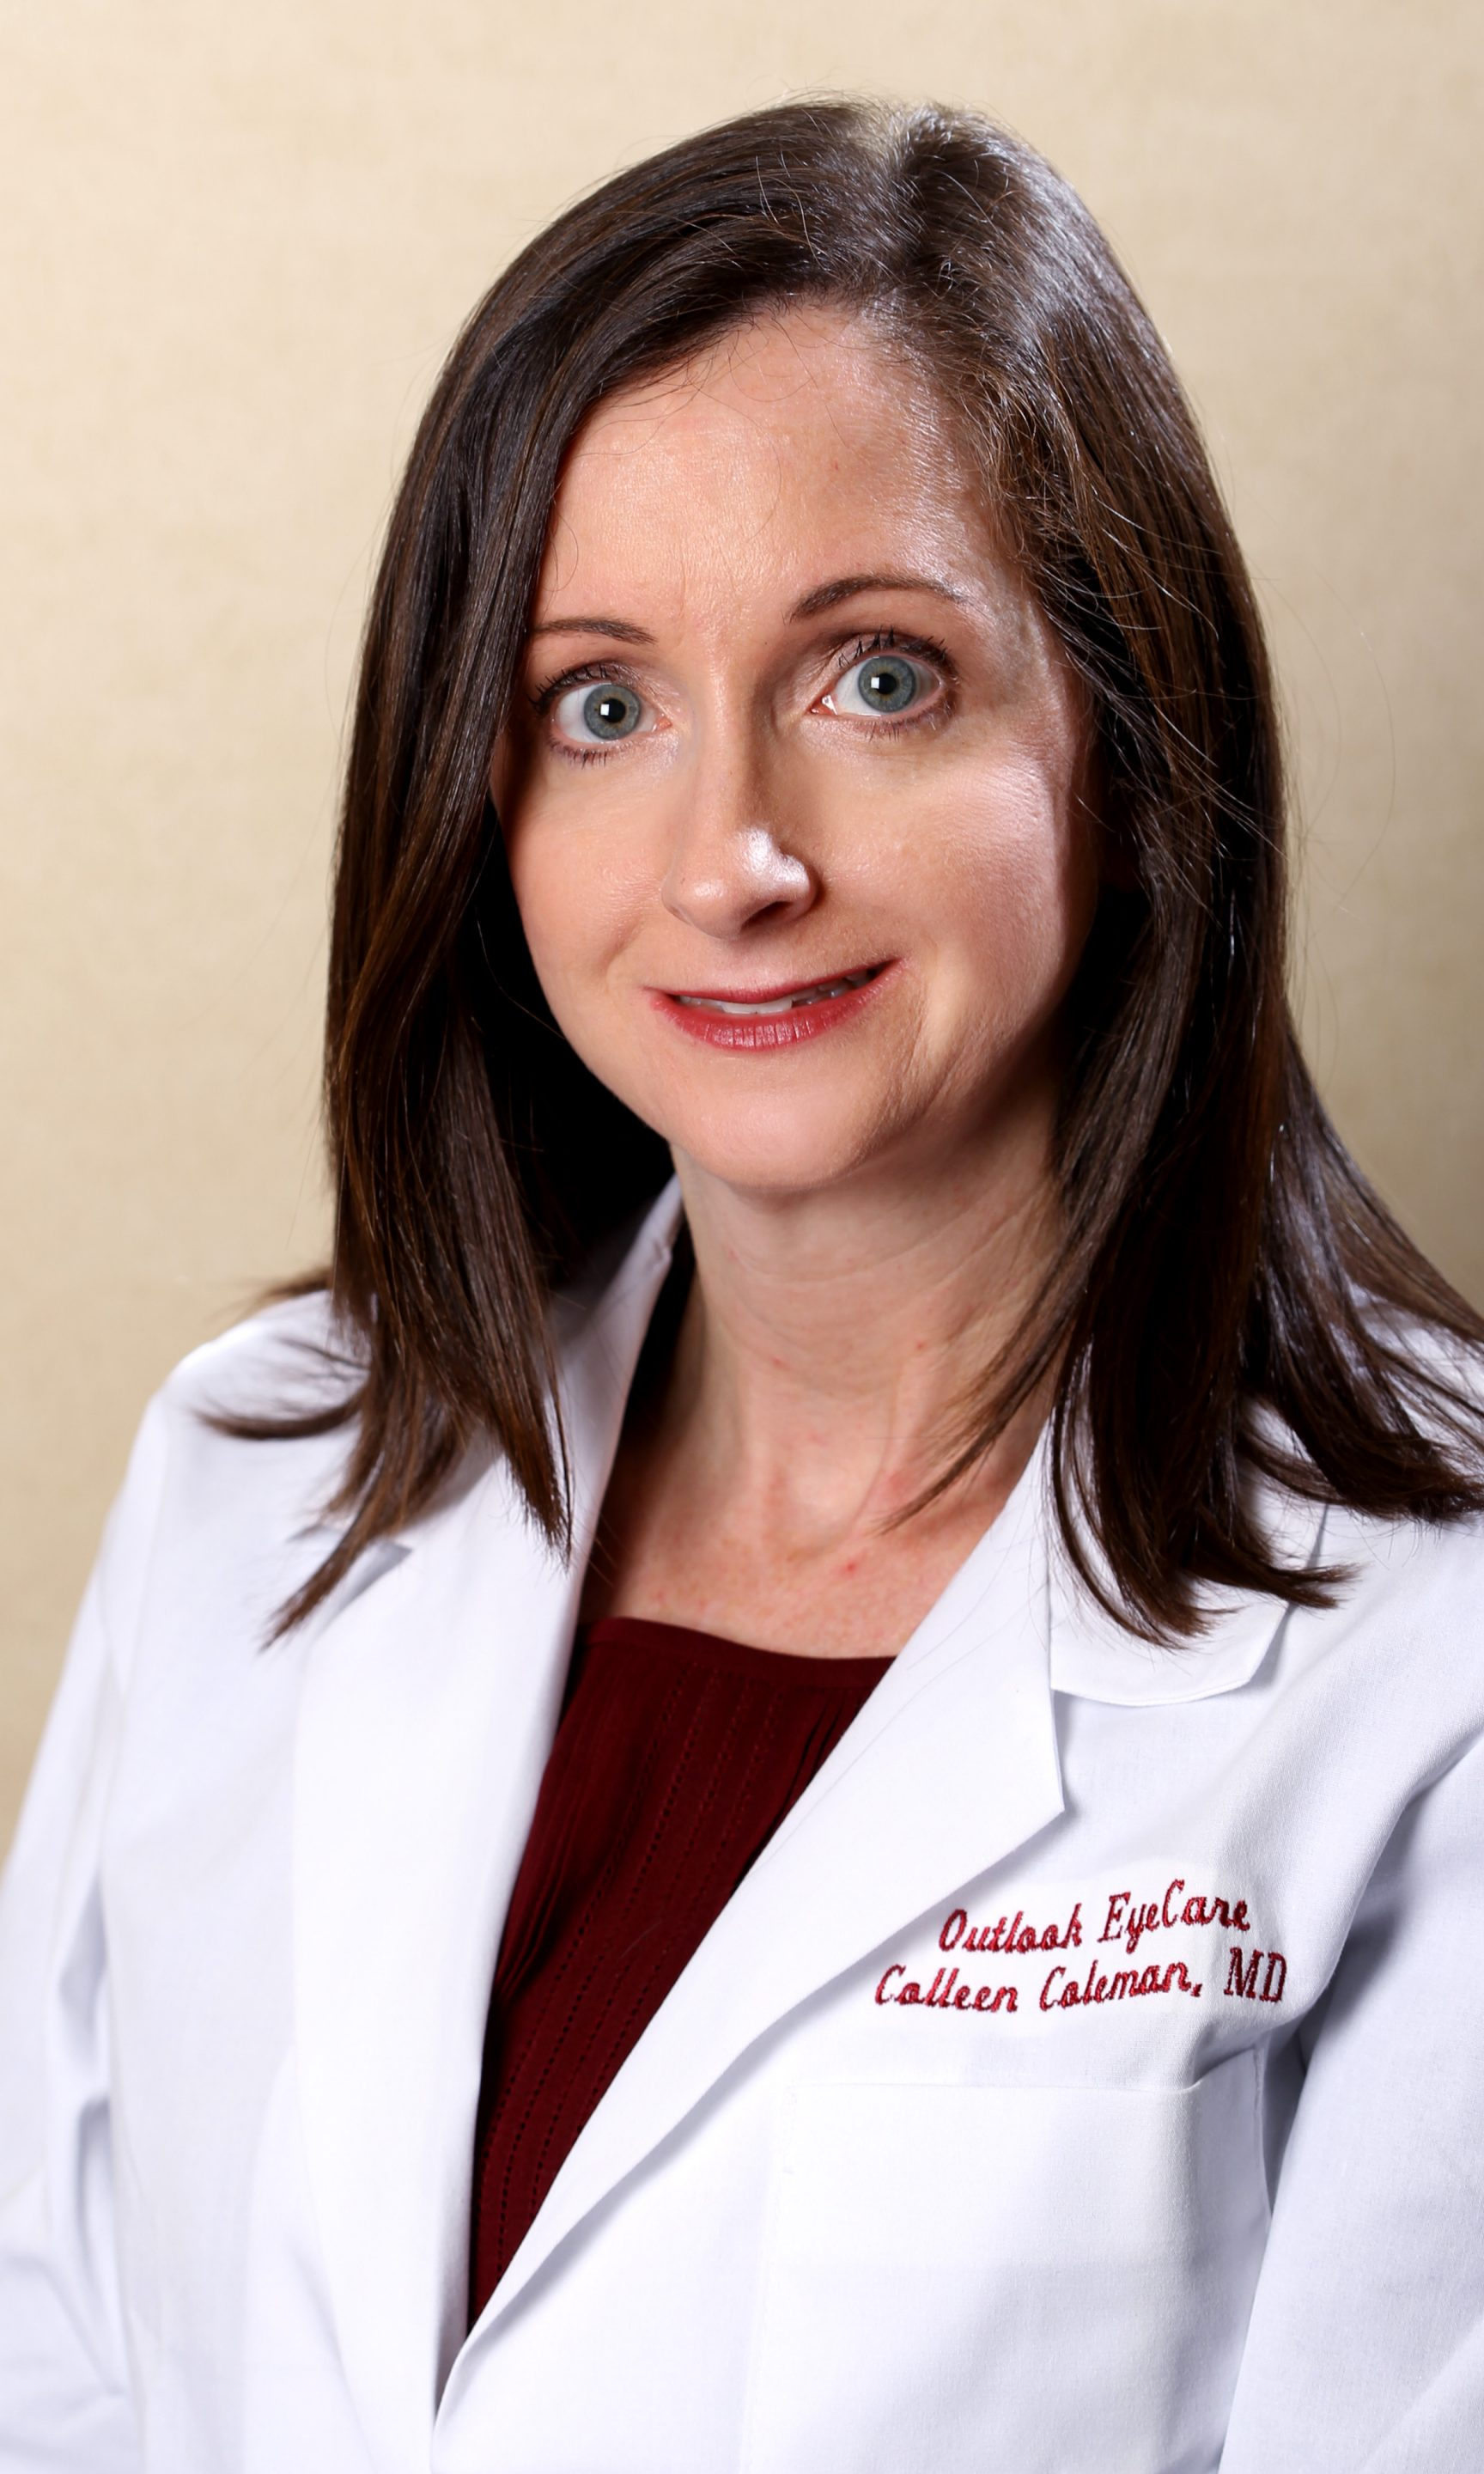 Colleen Coleman MD Ophthalmologist, Cataract Surgeon & Glaucoma Specialist